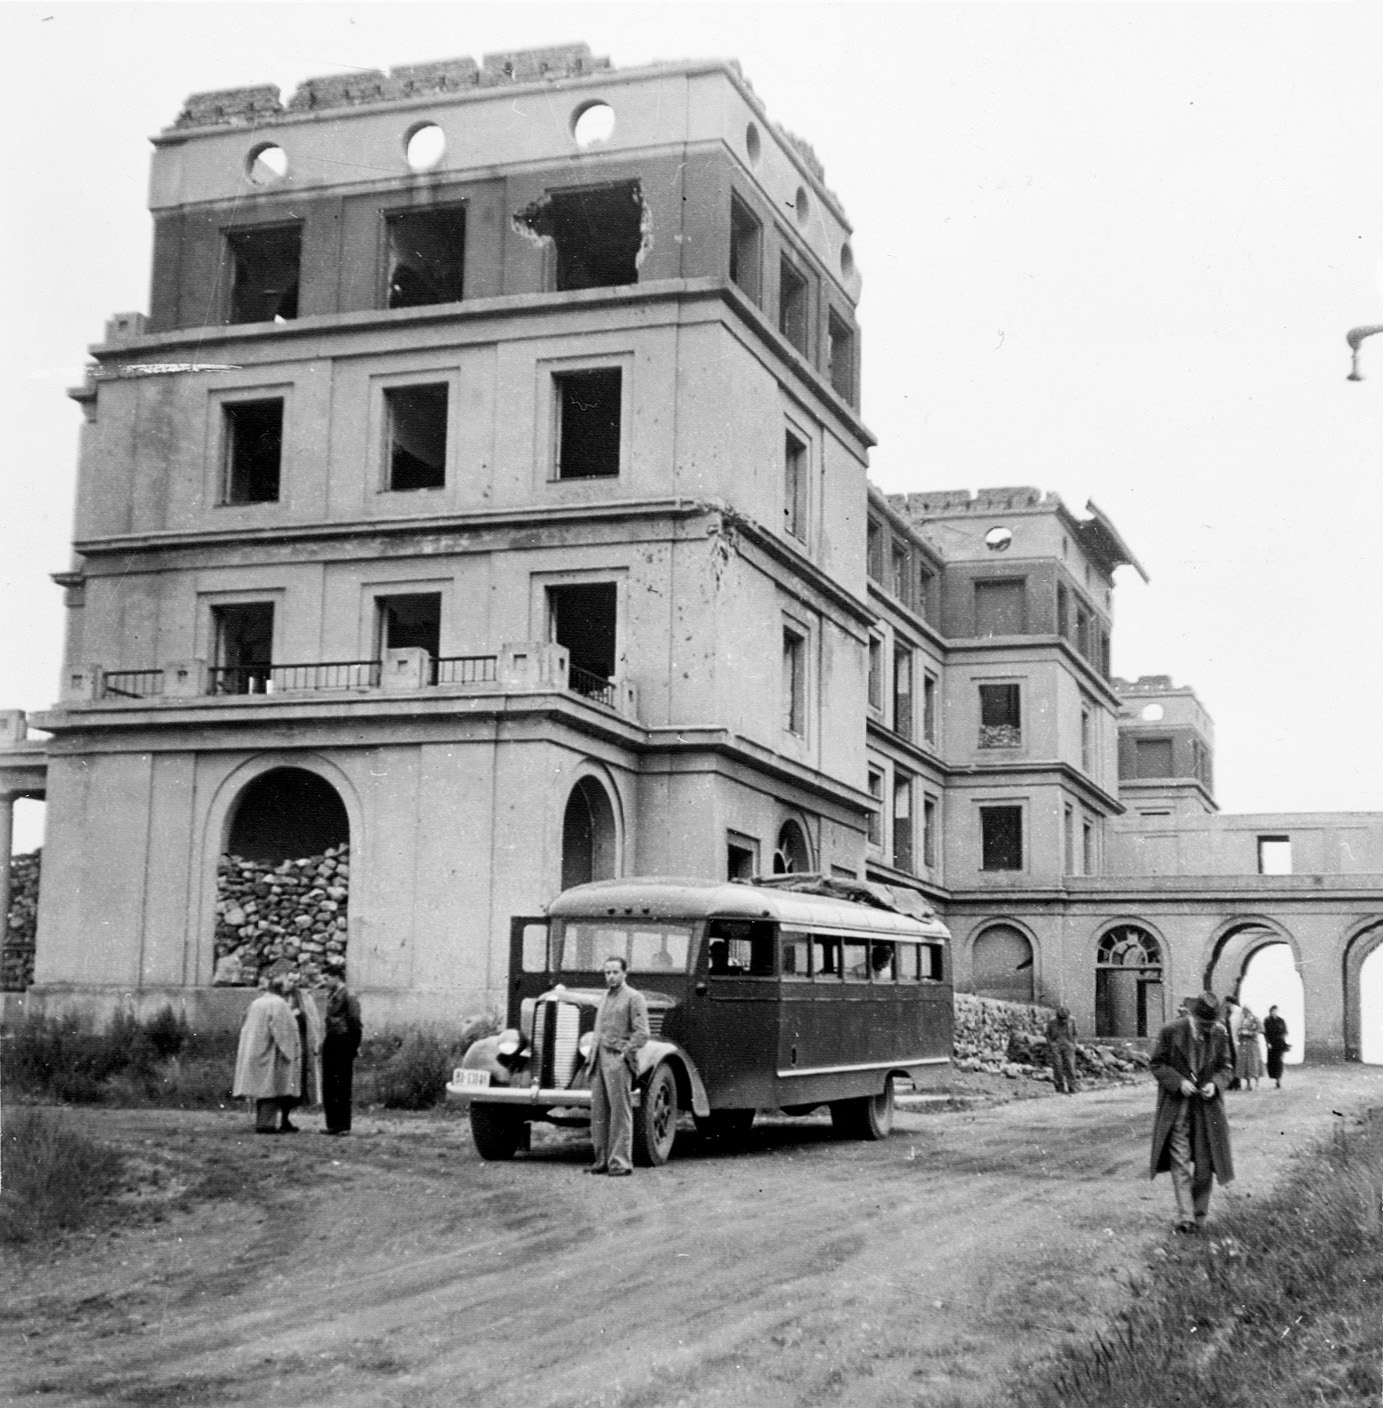 Group of tourists on national routes in Oviedo in 1938.